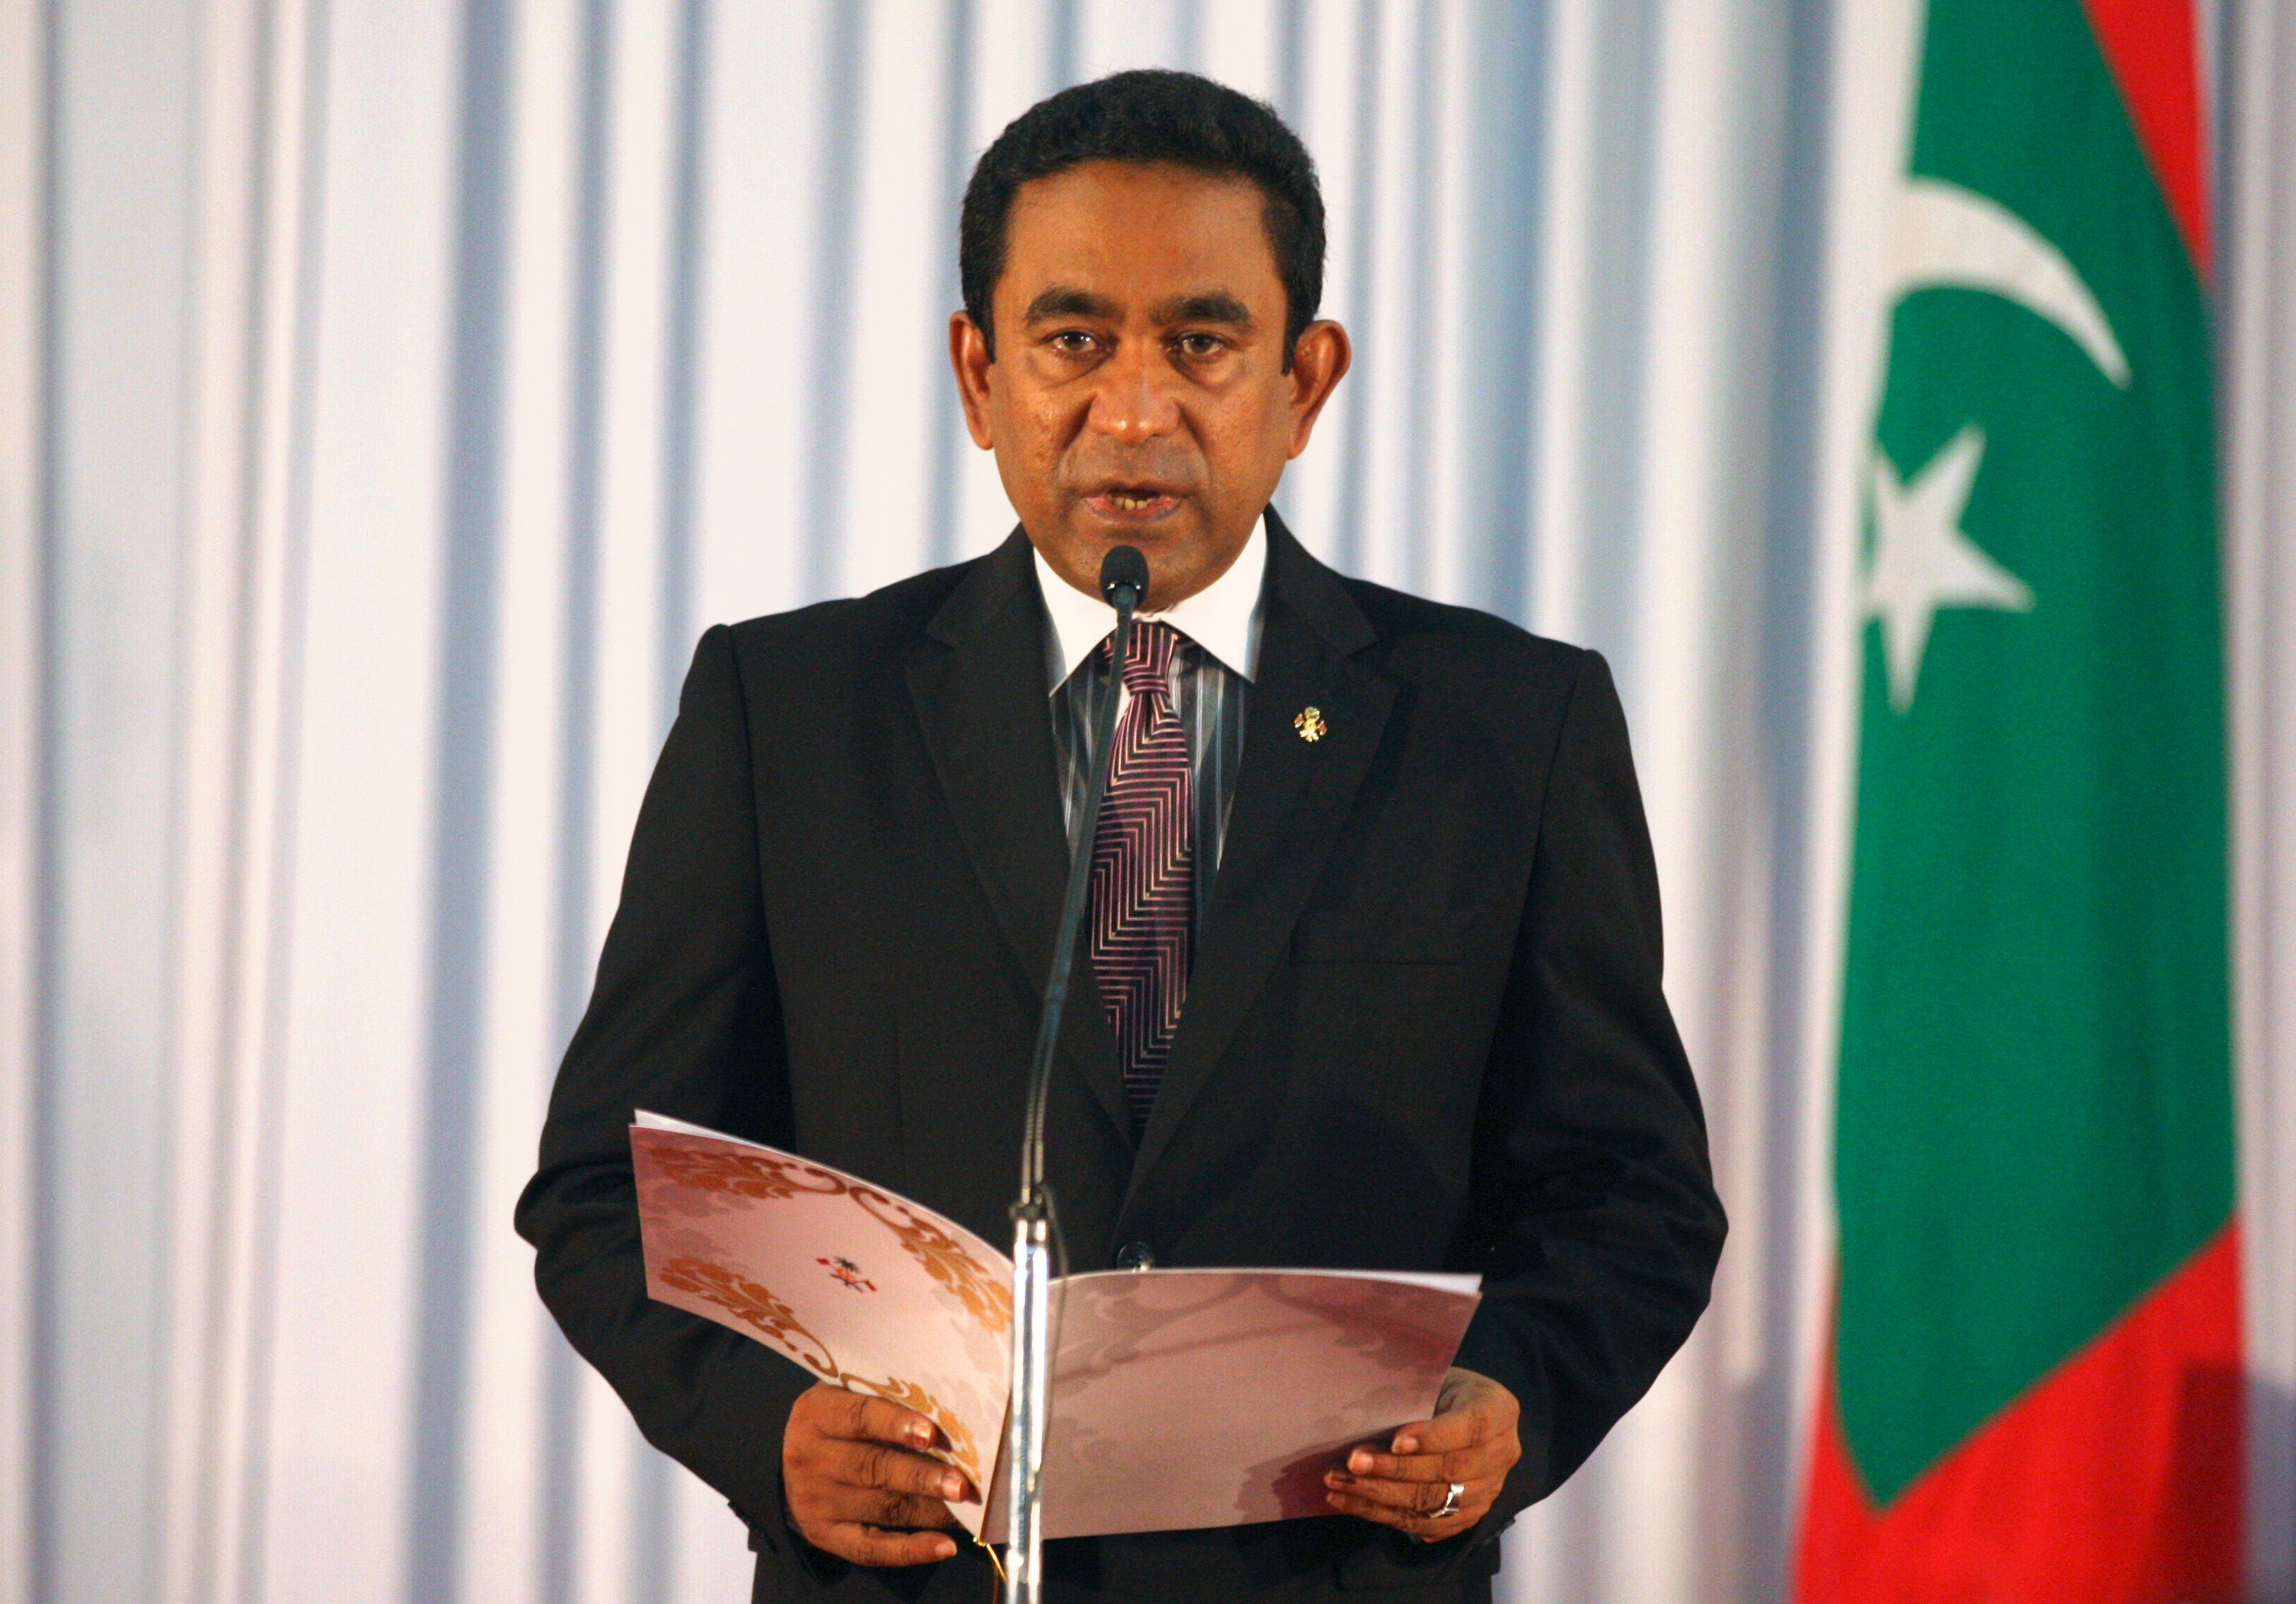 Abdulla Yameen takes his oath as the President of Maldives during a swearing-in ceremony at the parliament in Male November 17, 2013. Yameen won the Maldives presidential election run-off on Saturday, narrowly defeating the favourite Mohamed Nasheed in a ballot that voters hoped would end two years of political turmoil that has hit the vital tourism sector. REUTERS/Waheed Mohamed (SRI LANKA  - Tags: POLITICS ELECTIONS)